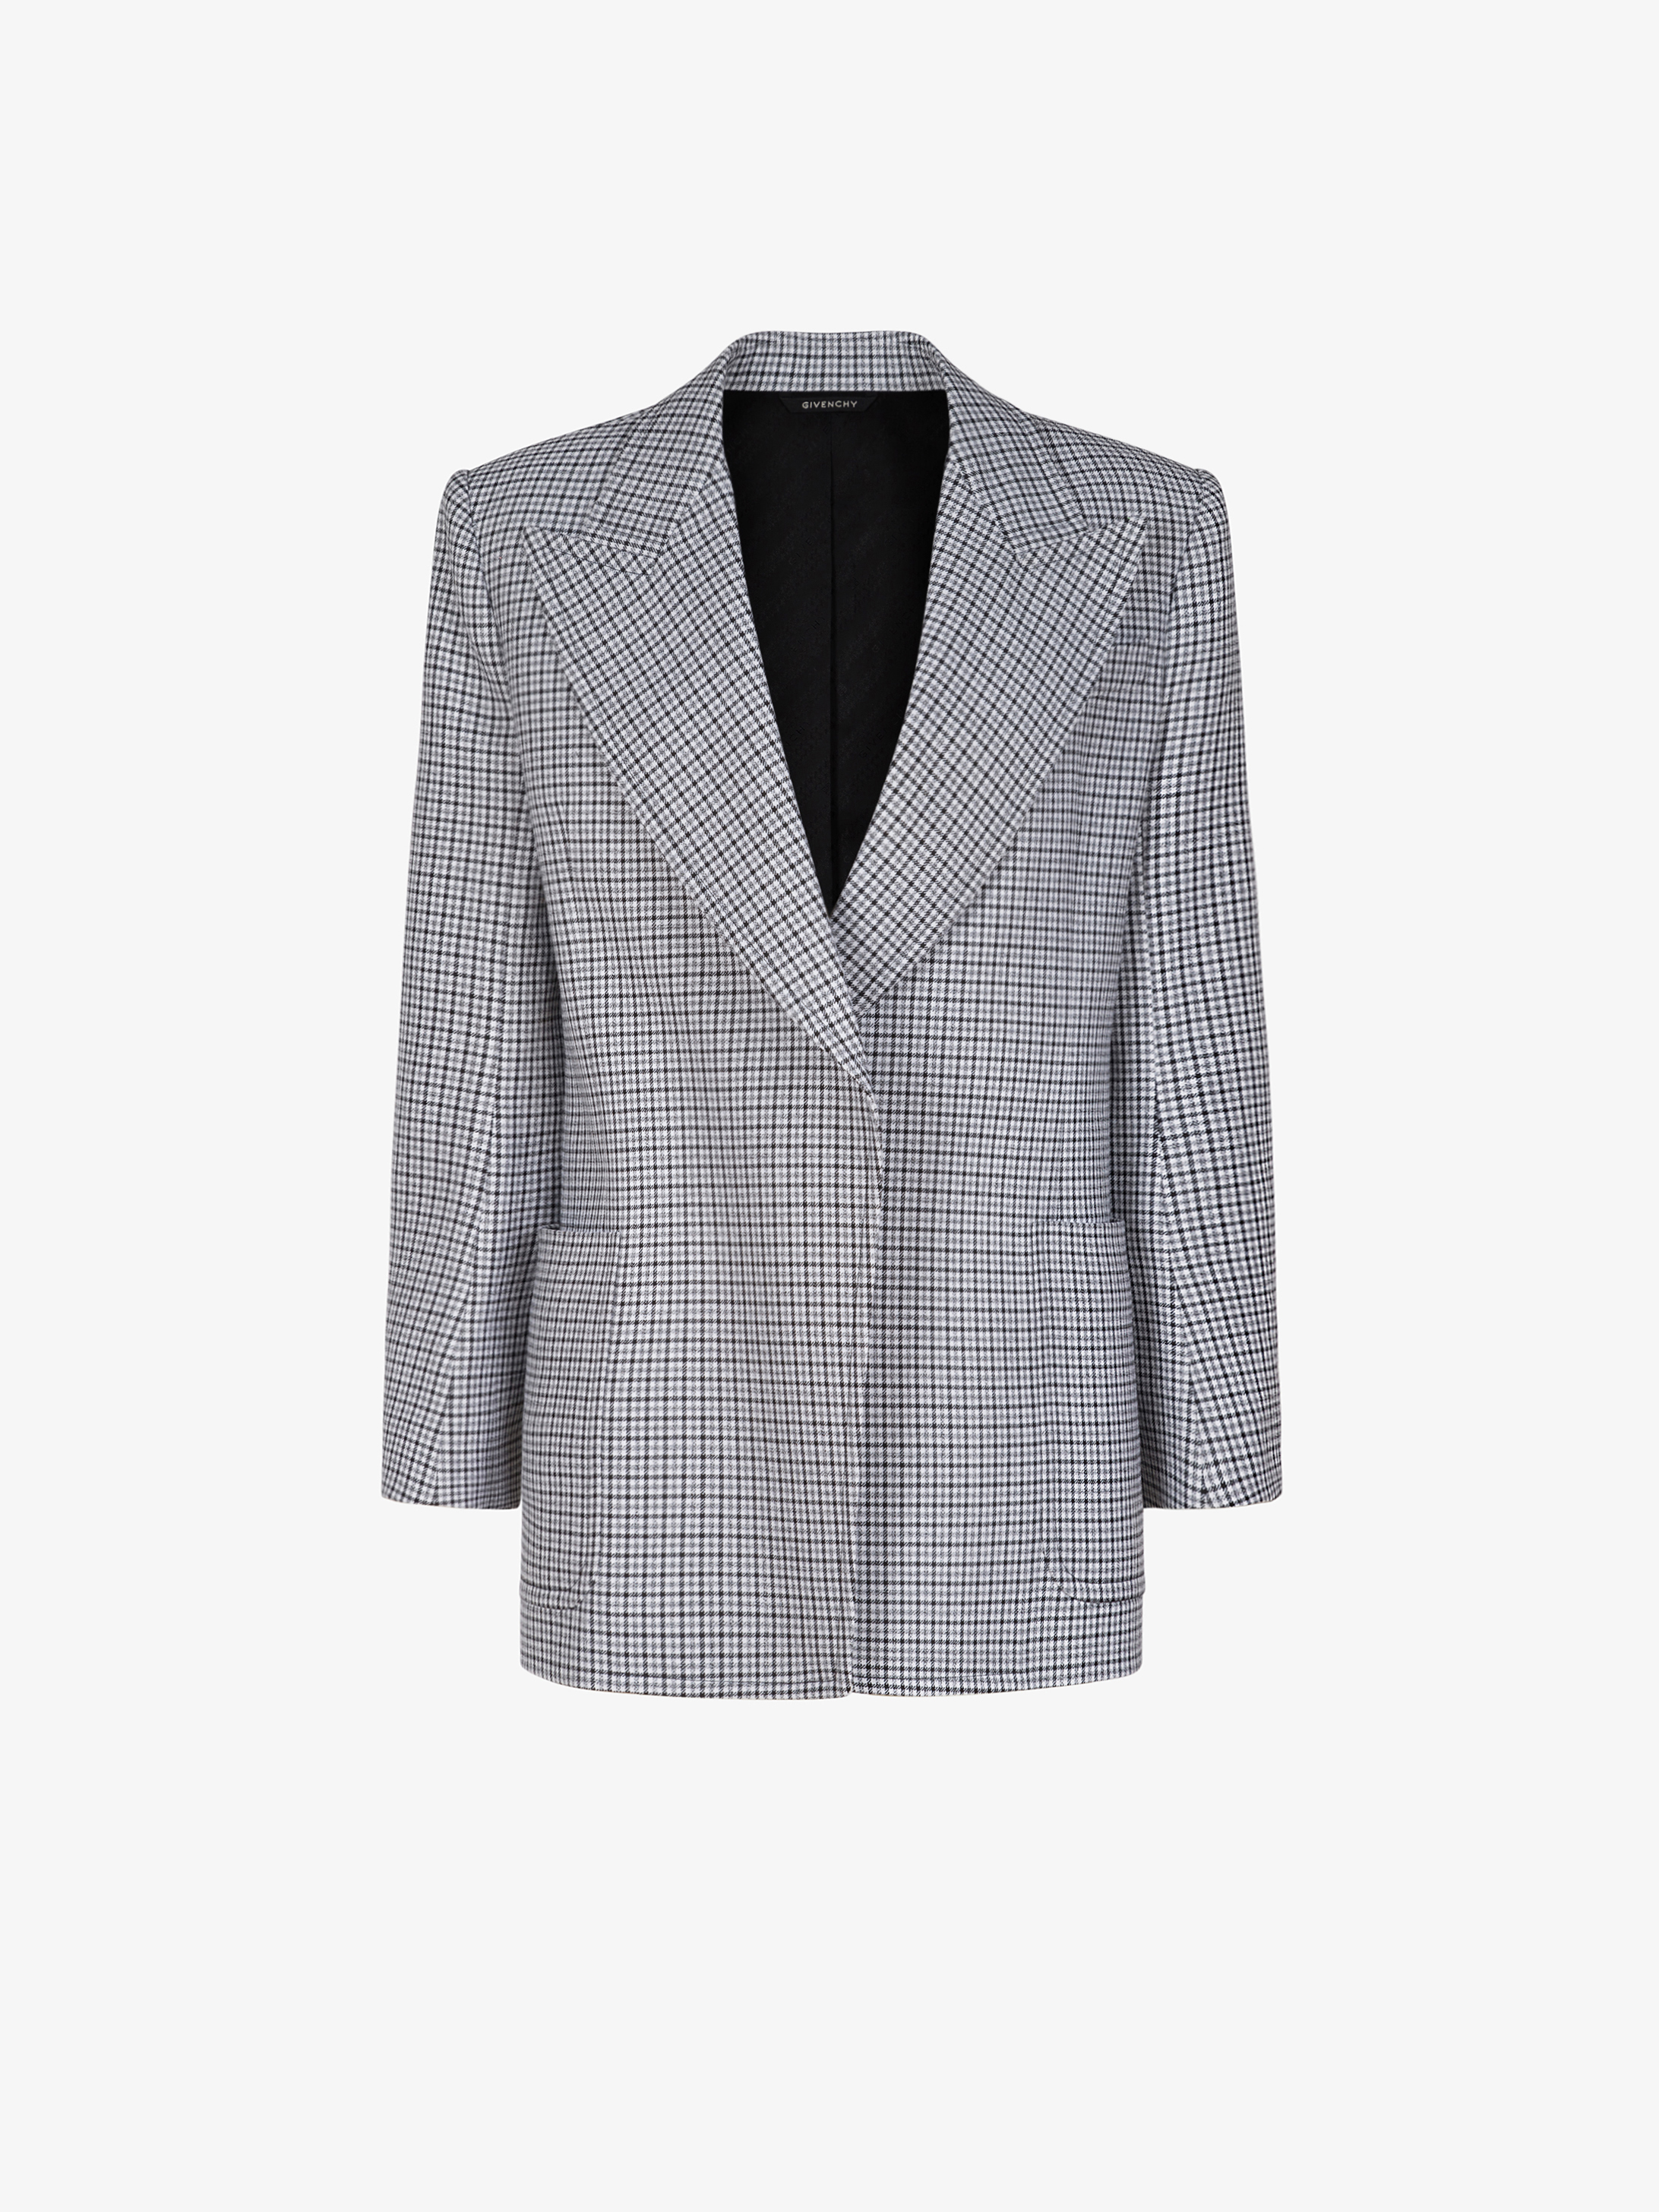 Double breasted jacket in houndstooth wool